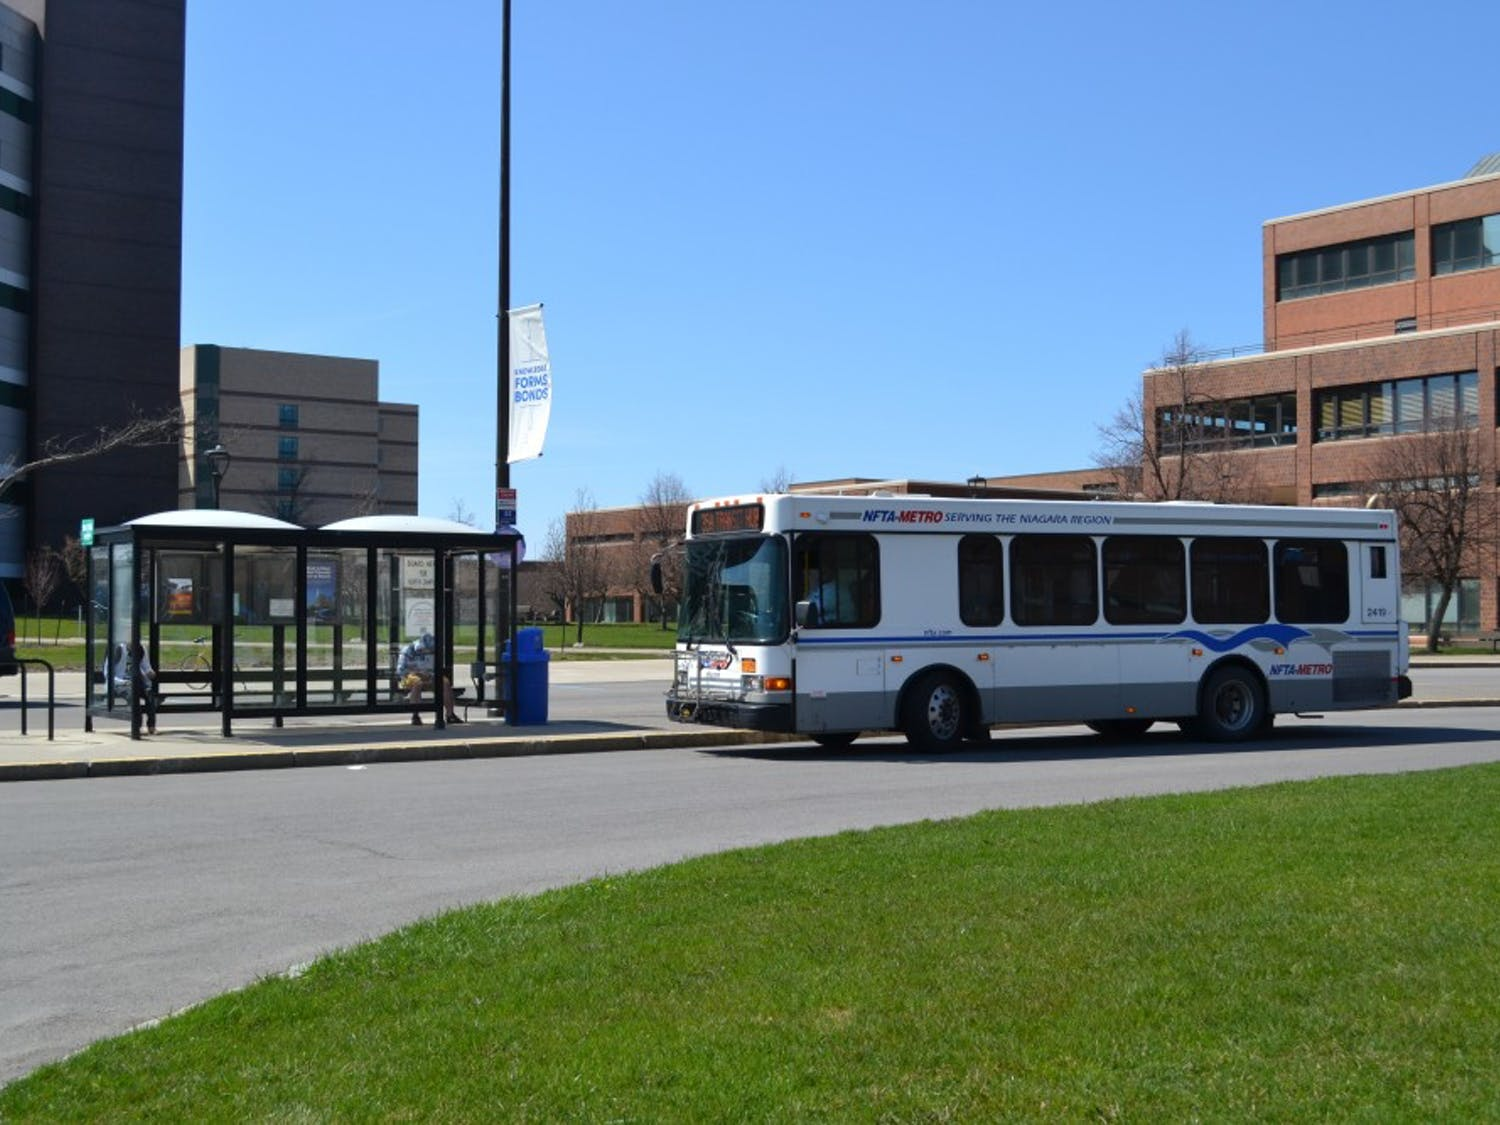 NFTA's CRAM pass would offer students unlimited rides on Buffalo buses and the train. The pass would cost students $50 a semester, according to Martin Martineck, NFTA superintendent of communications and advertising.